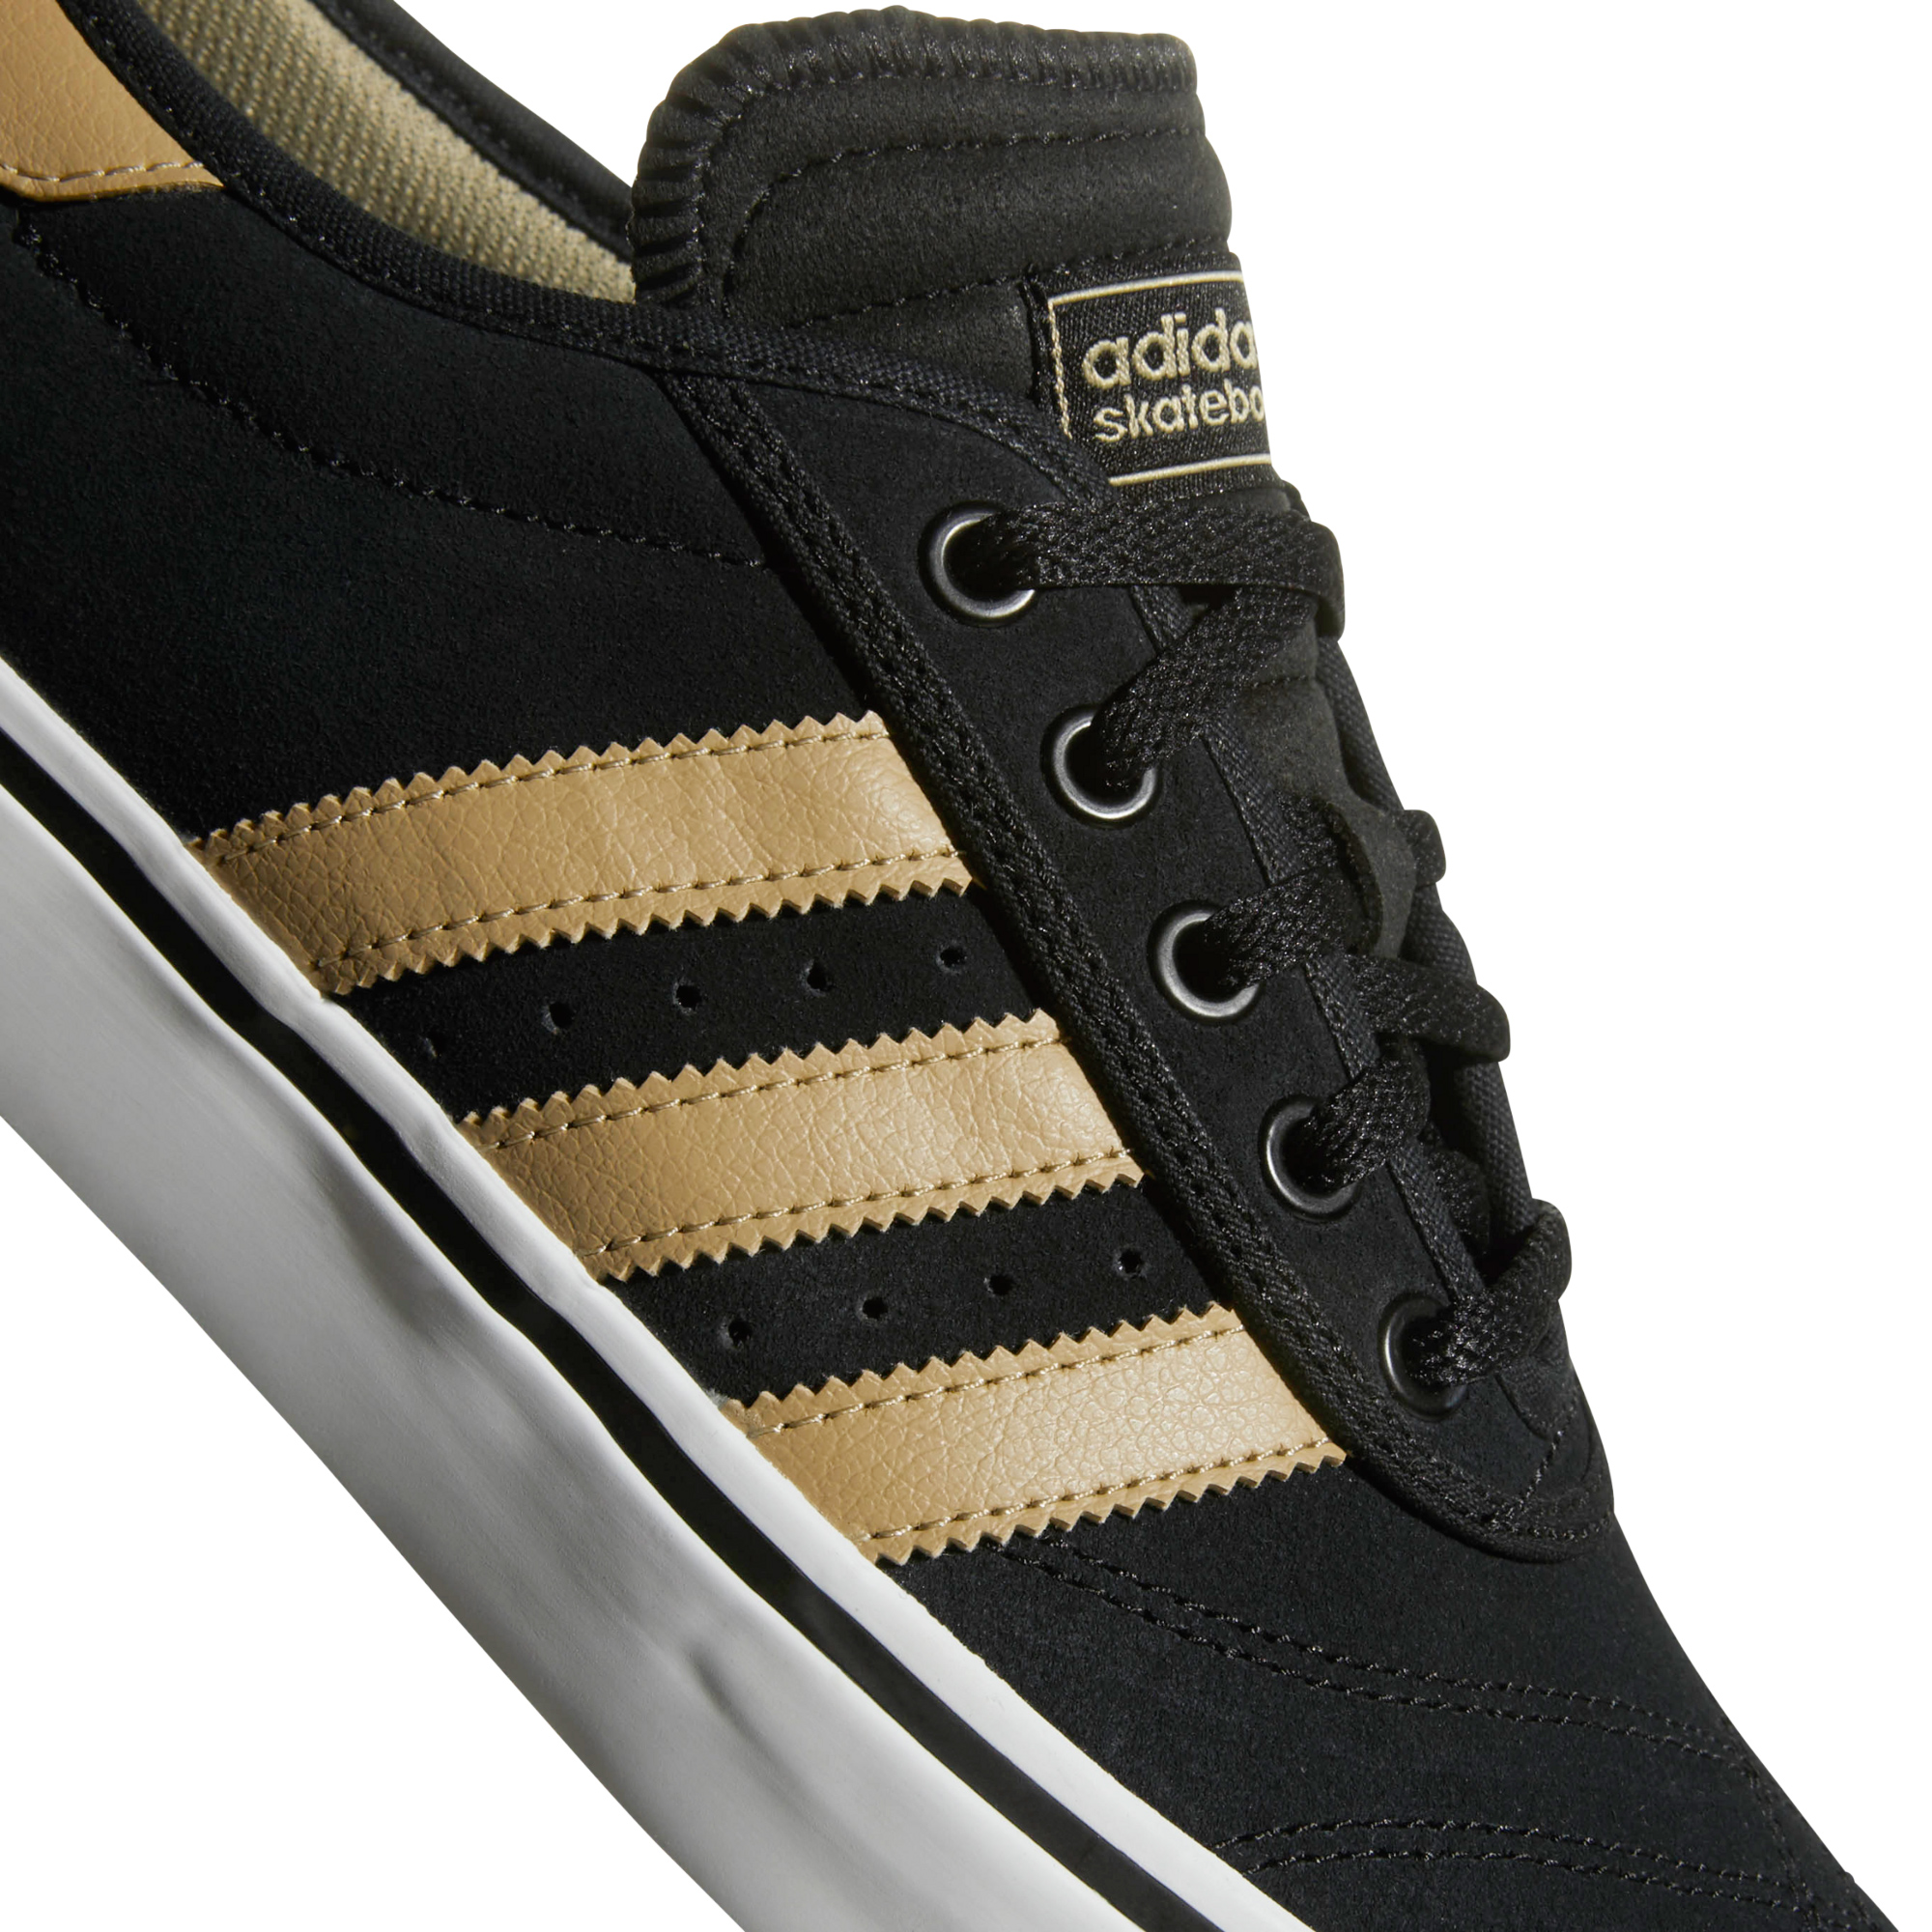 8e2dc2363152 adidas Skateboarding Adi Ease Premiere Suede Shoes Black Raw Gold White  11.5. About this product. Picture 1 of 7  Picture 2 of 7  Picture 3 of 7   Picture 4 ...